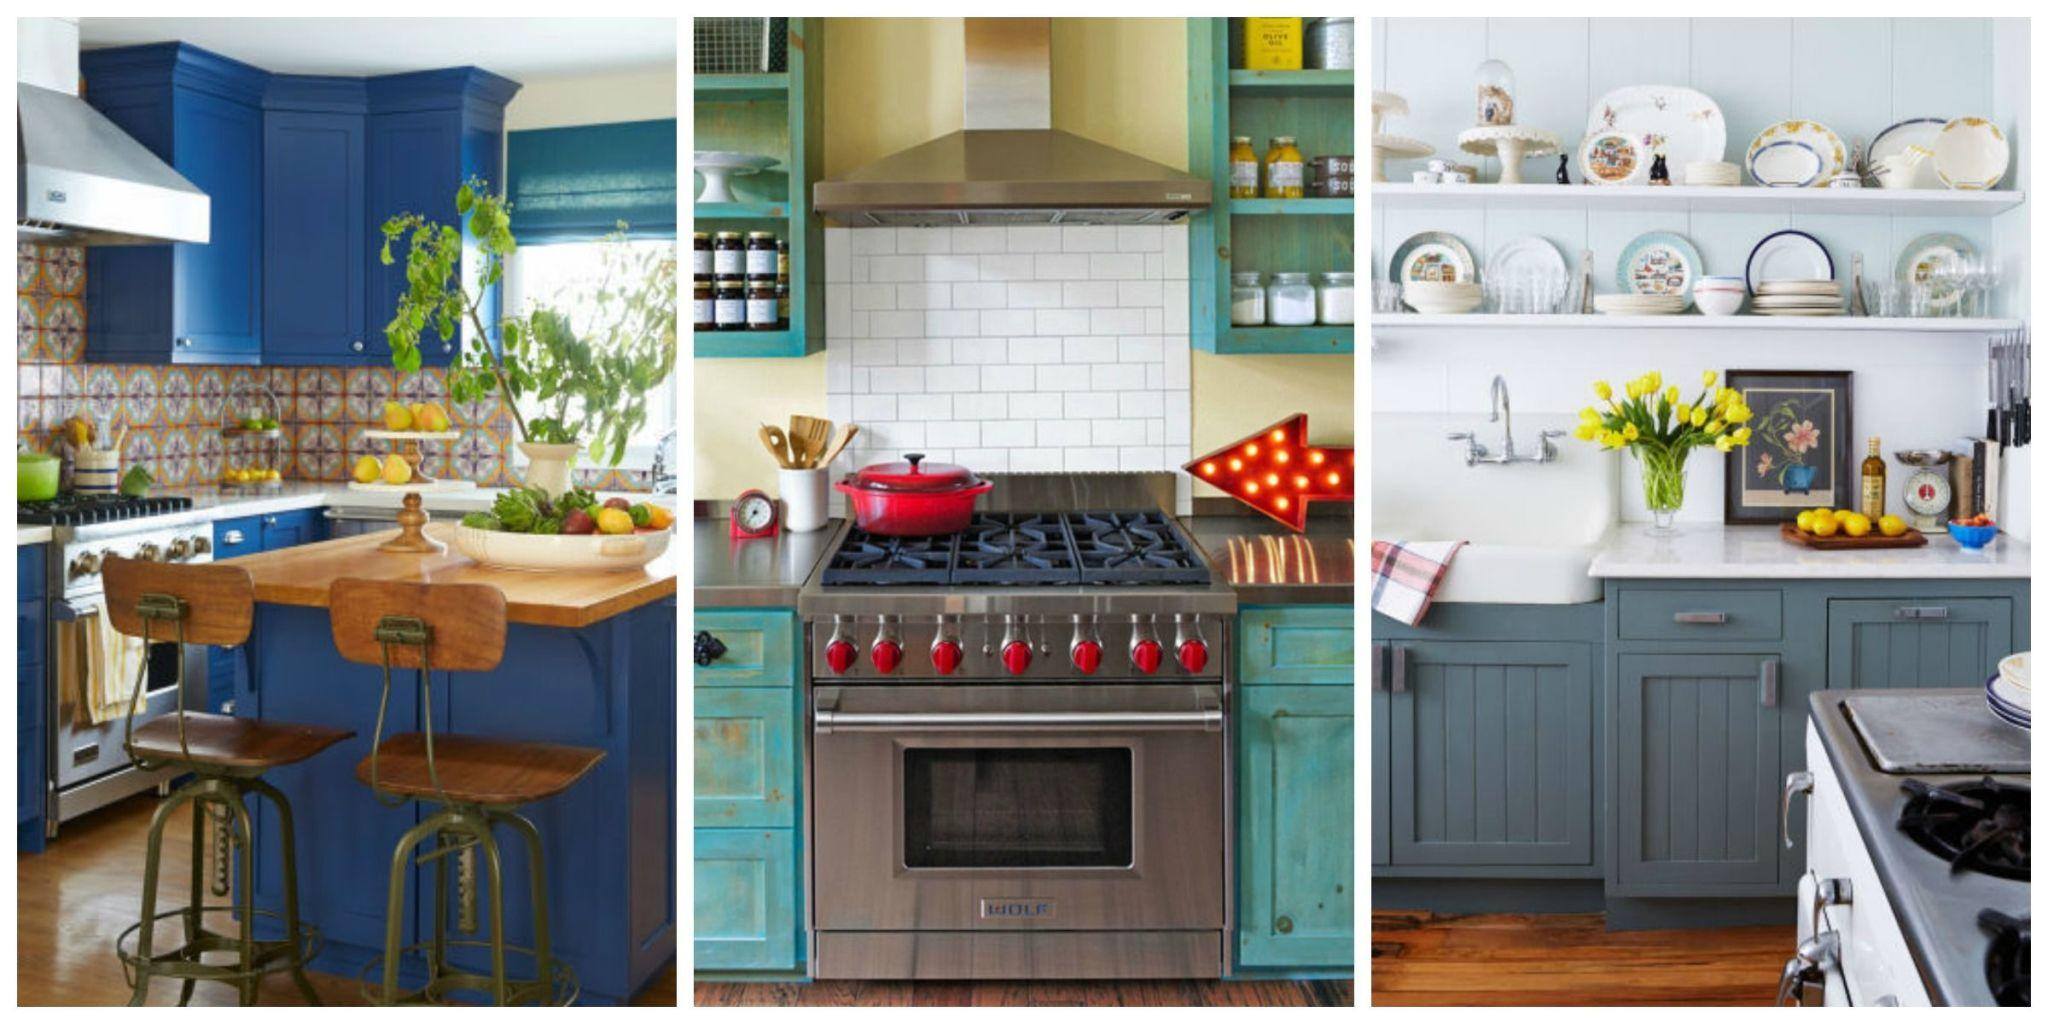 10 Beautiful Blue Paint Colors to Use In Your Kitchen - photo#37